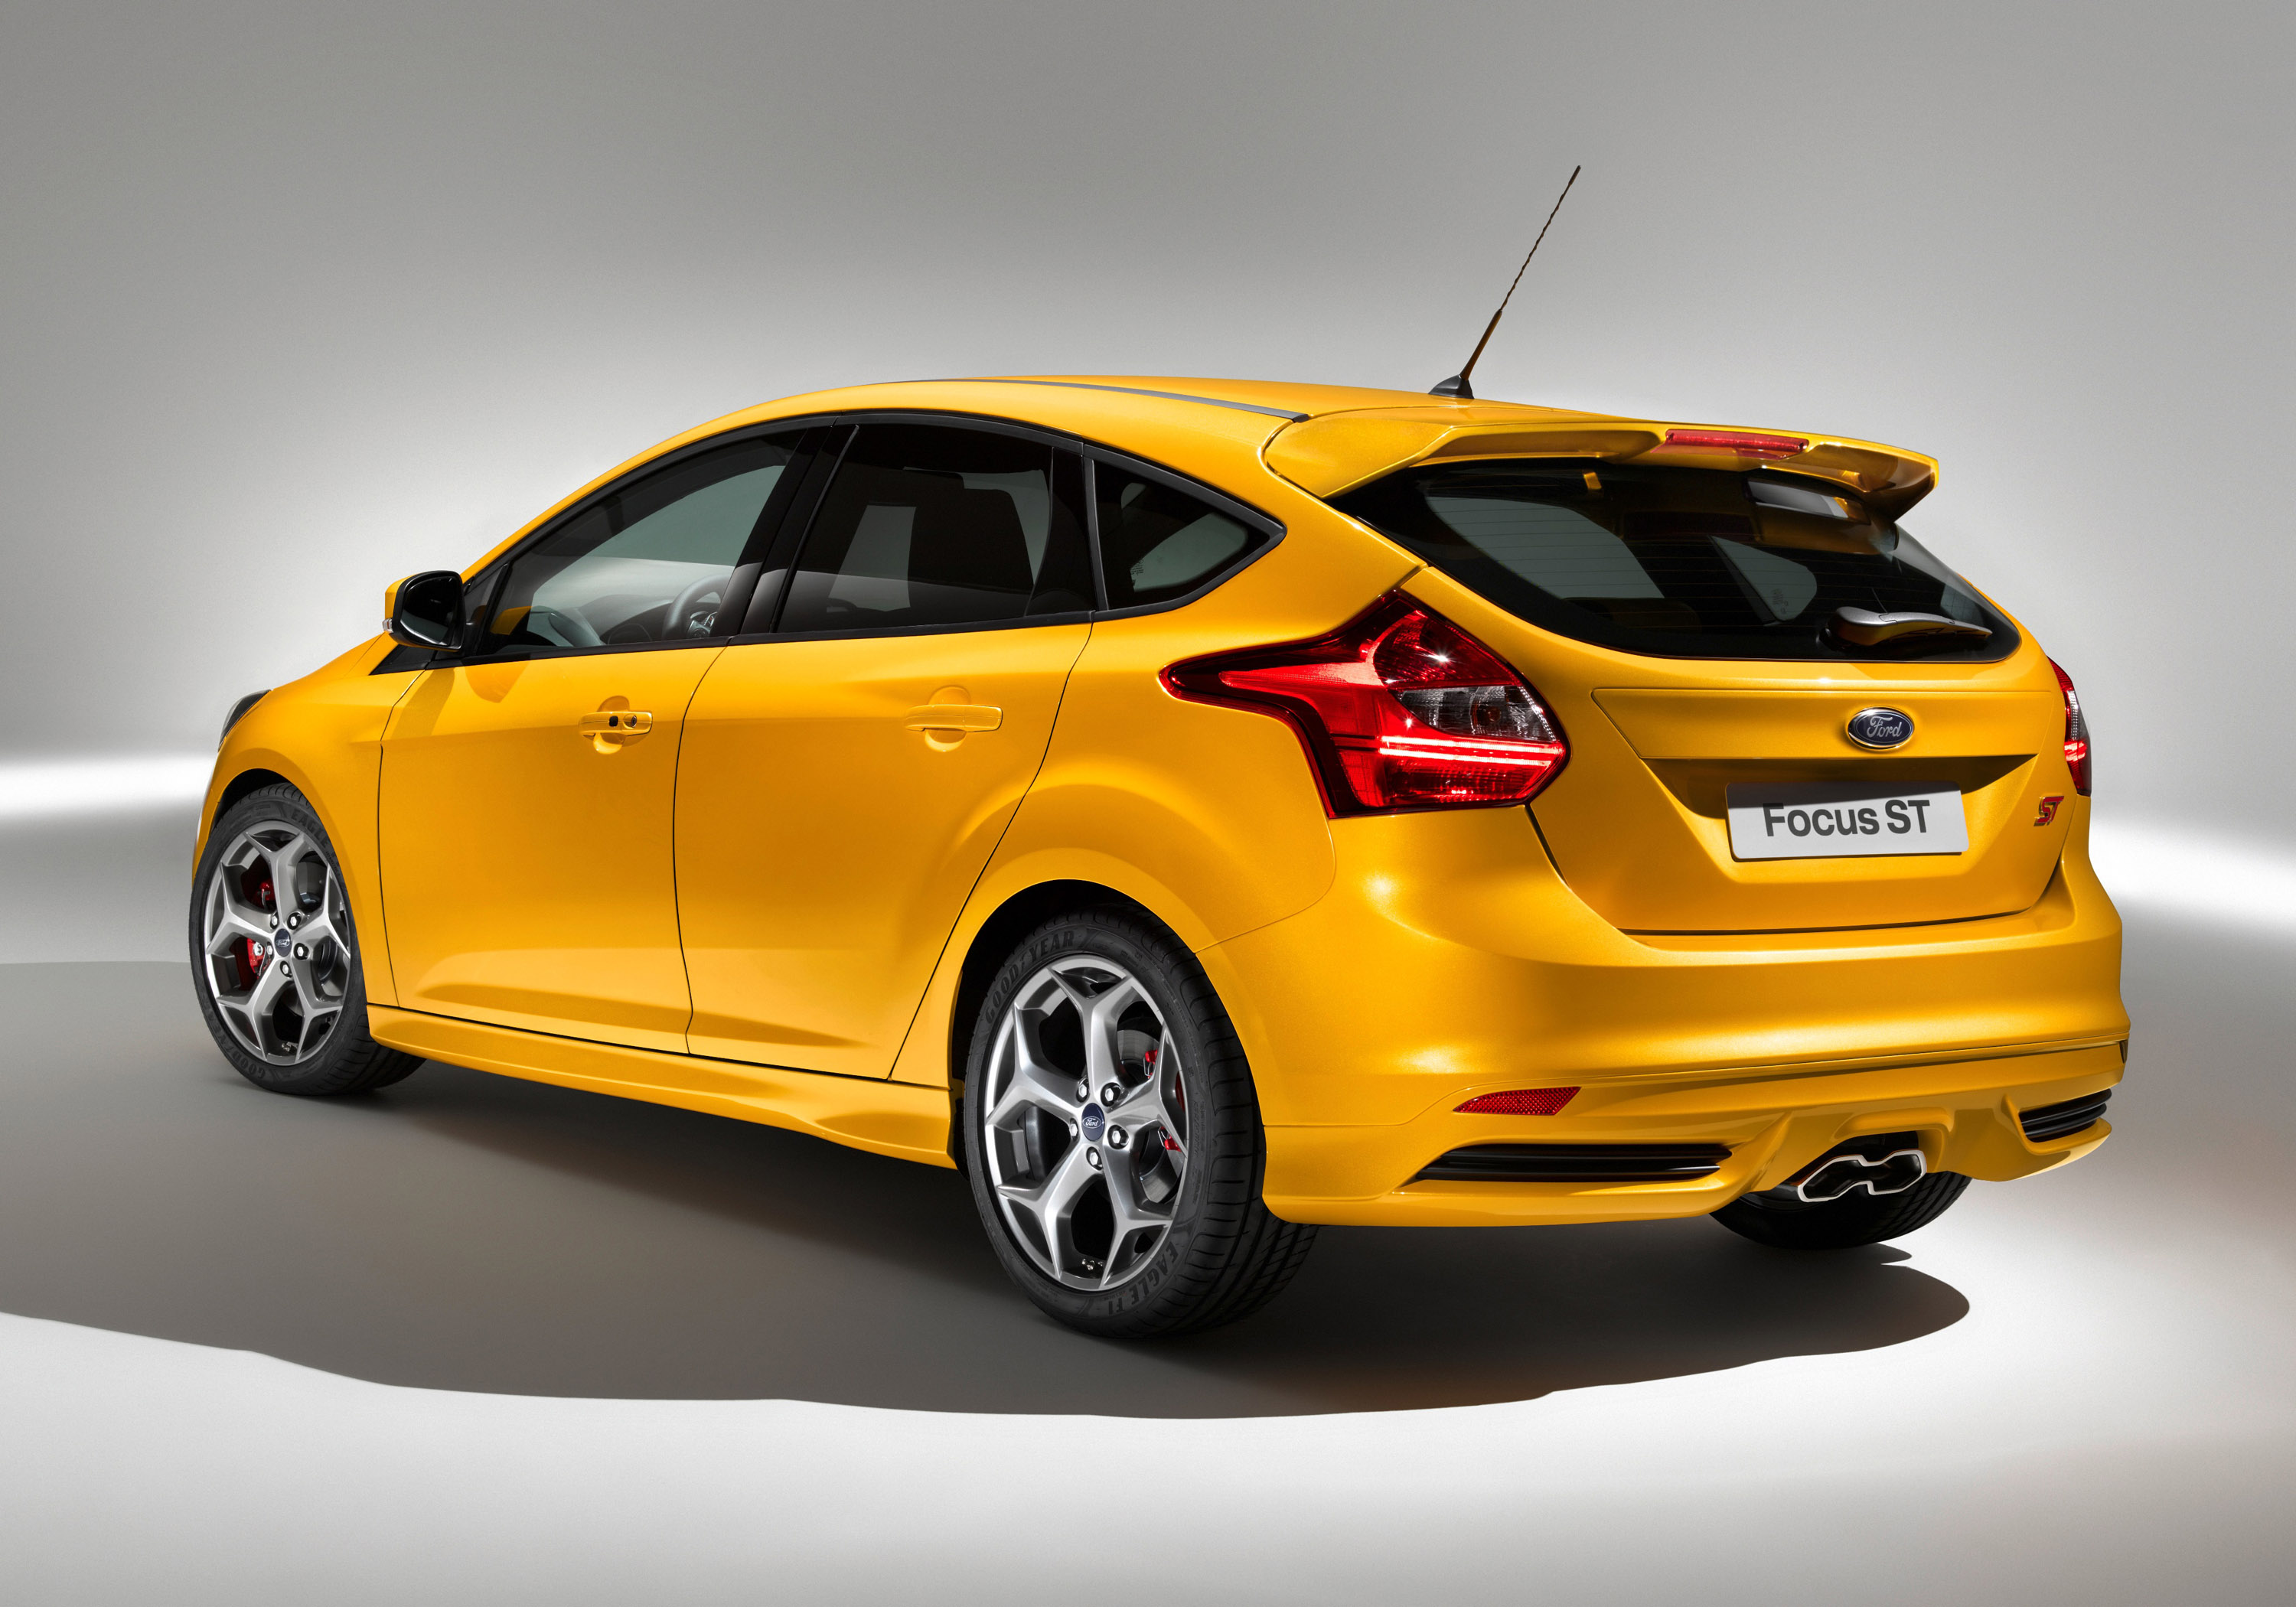 2012 Ford Focus ST 5door and Wagon